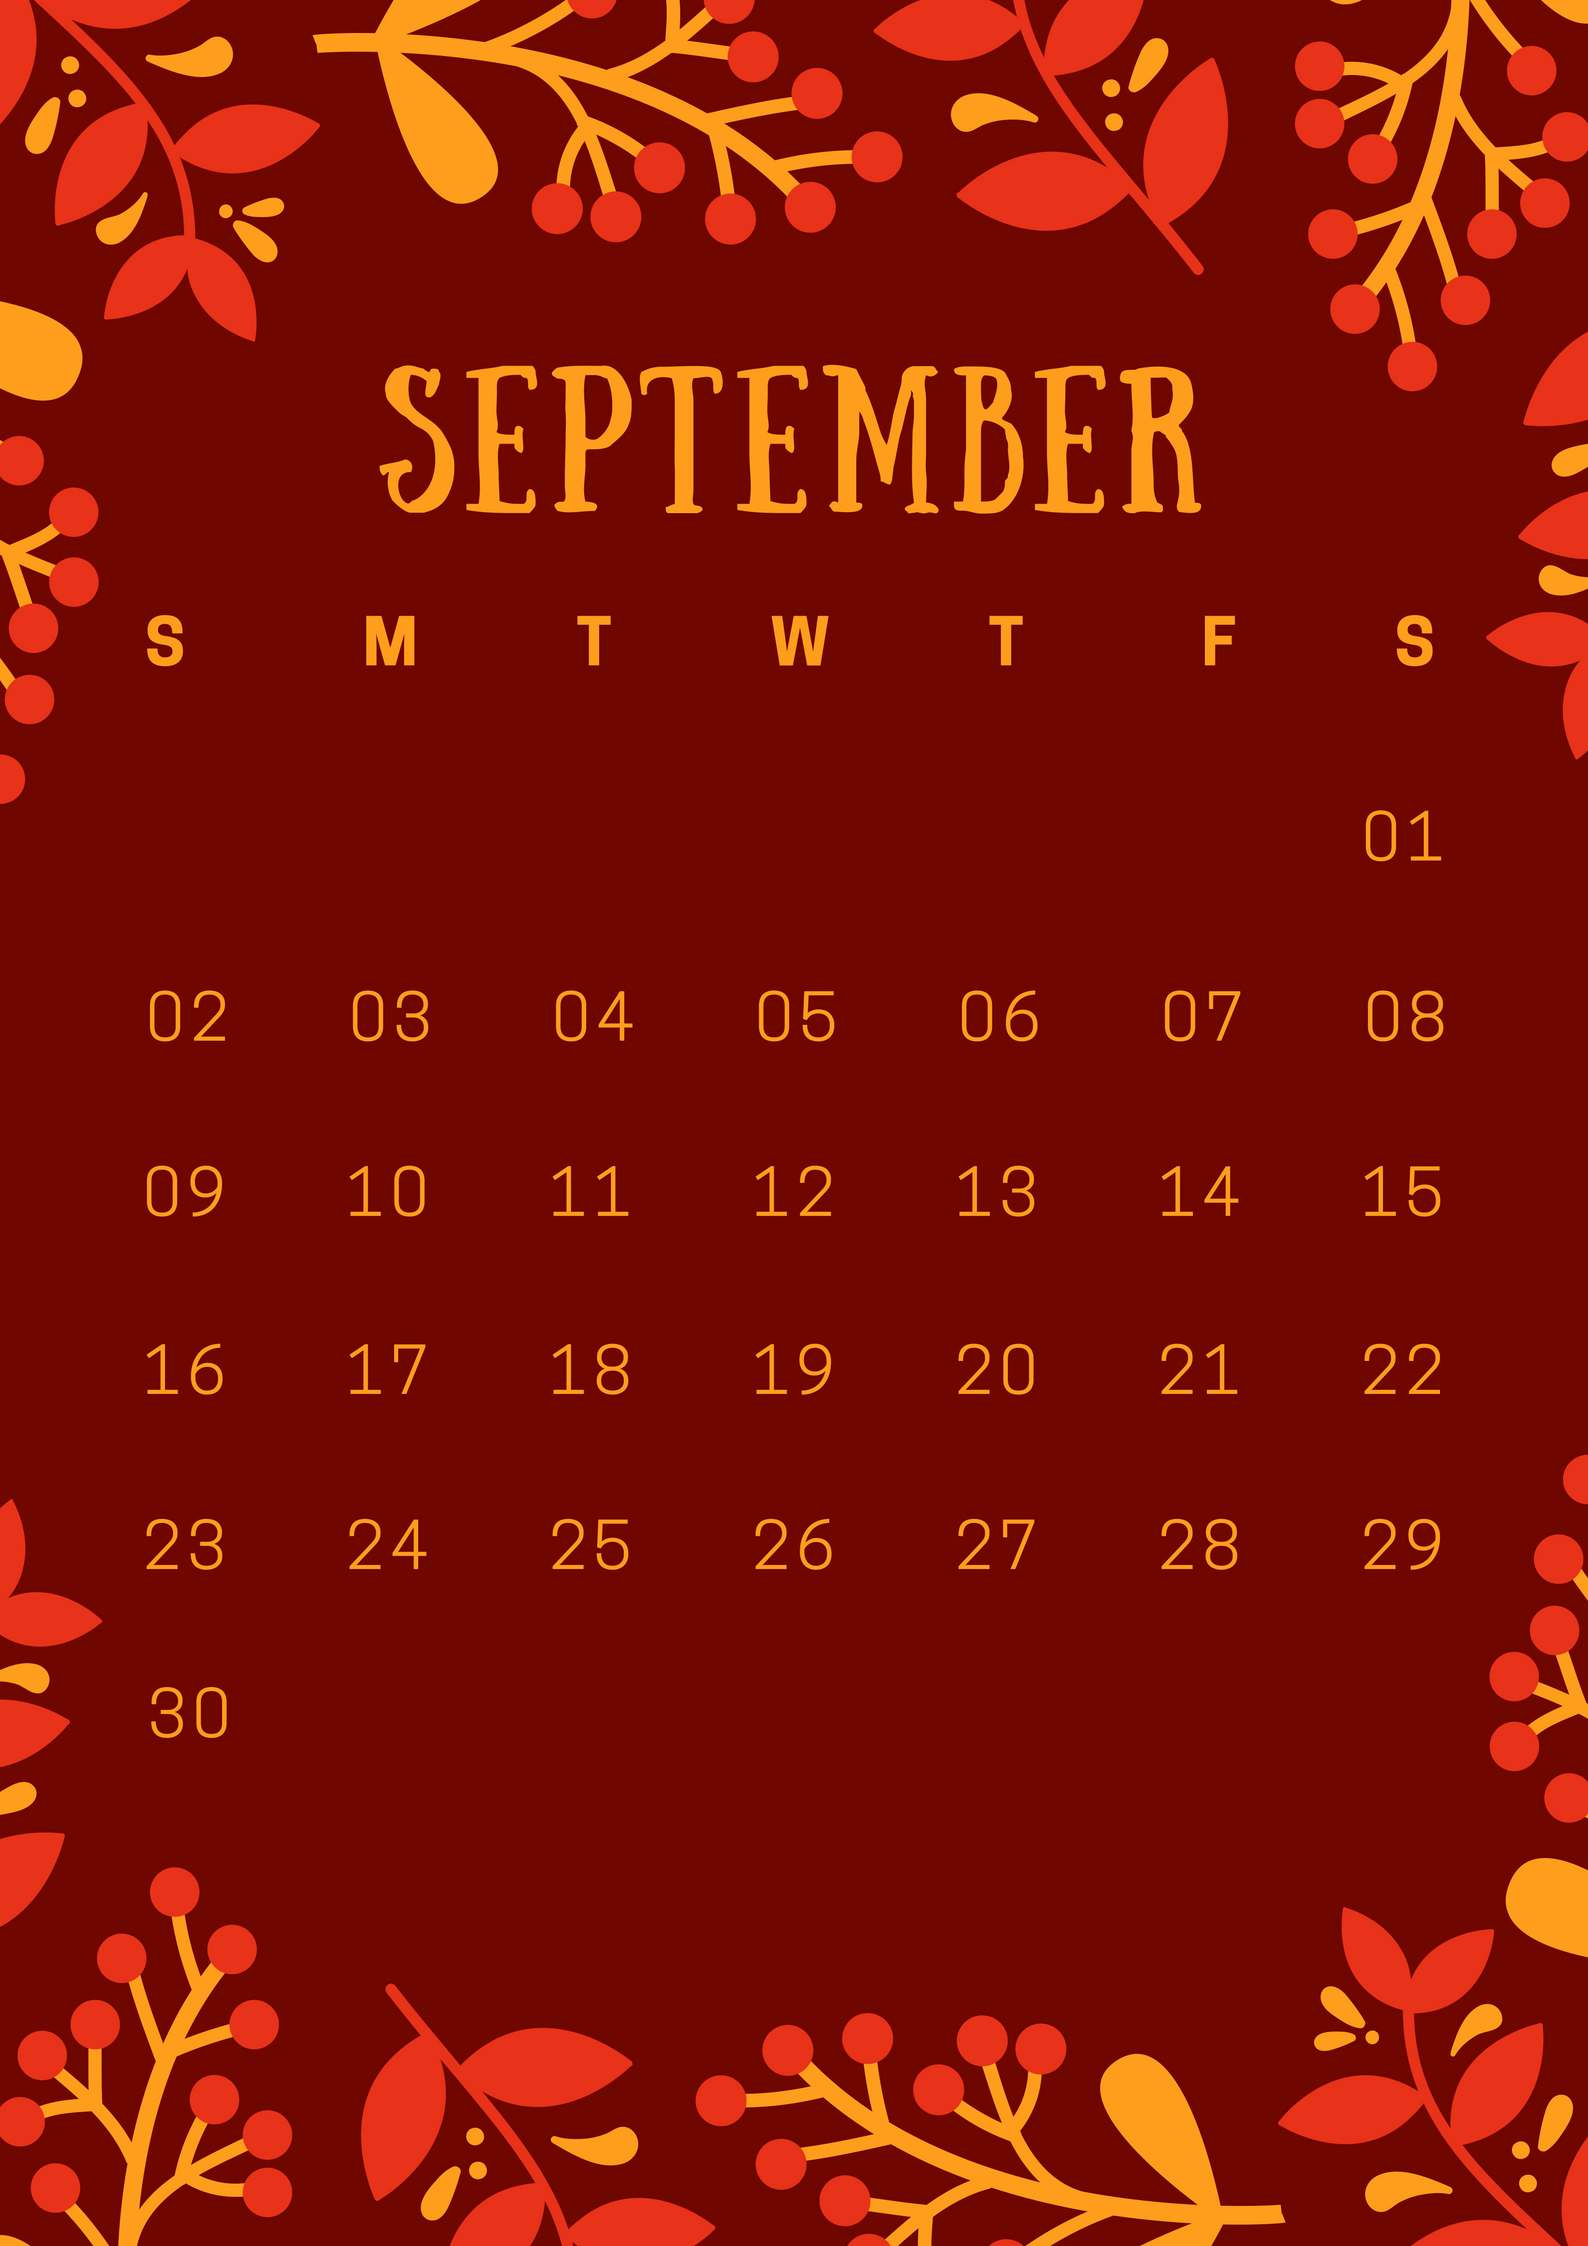 September 2018 iPhone Calendar Wallpaper